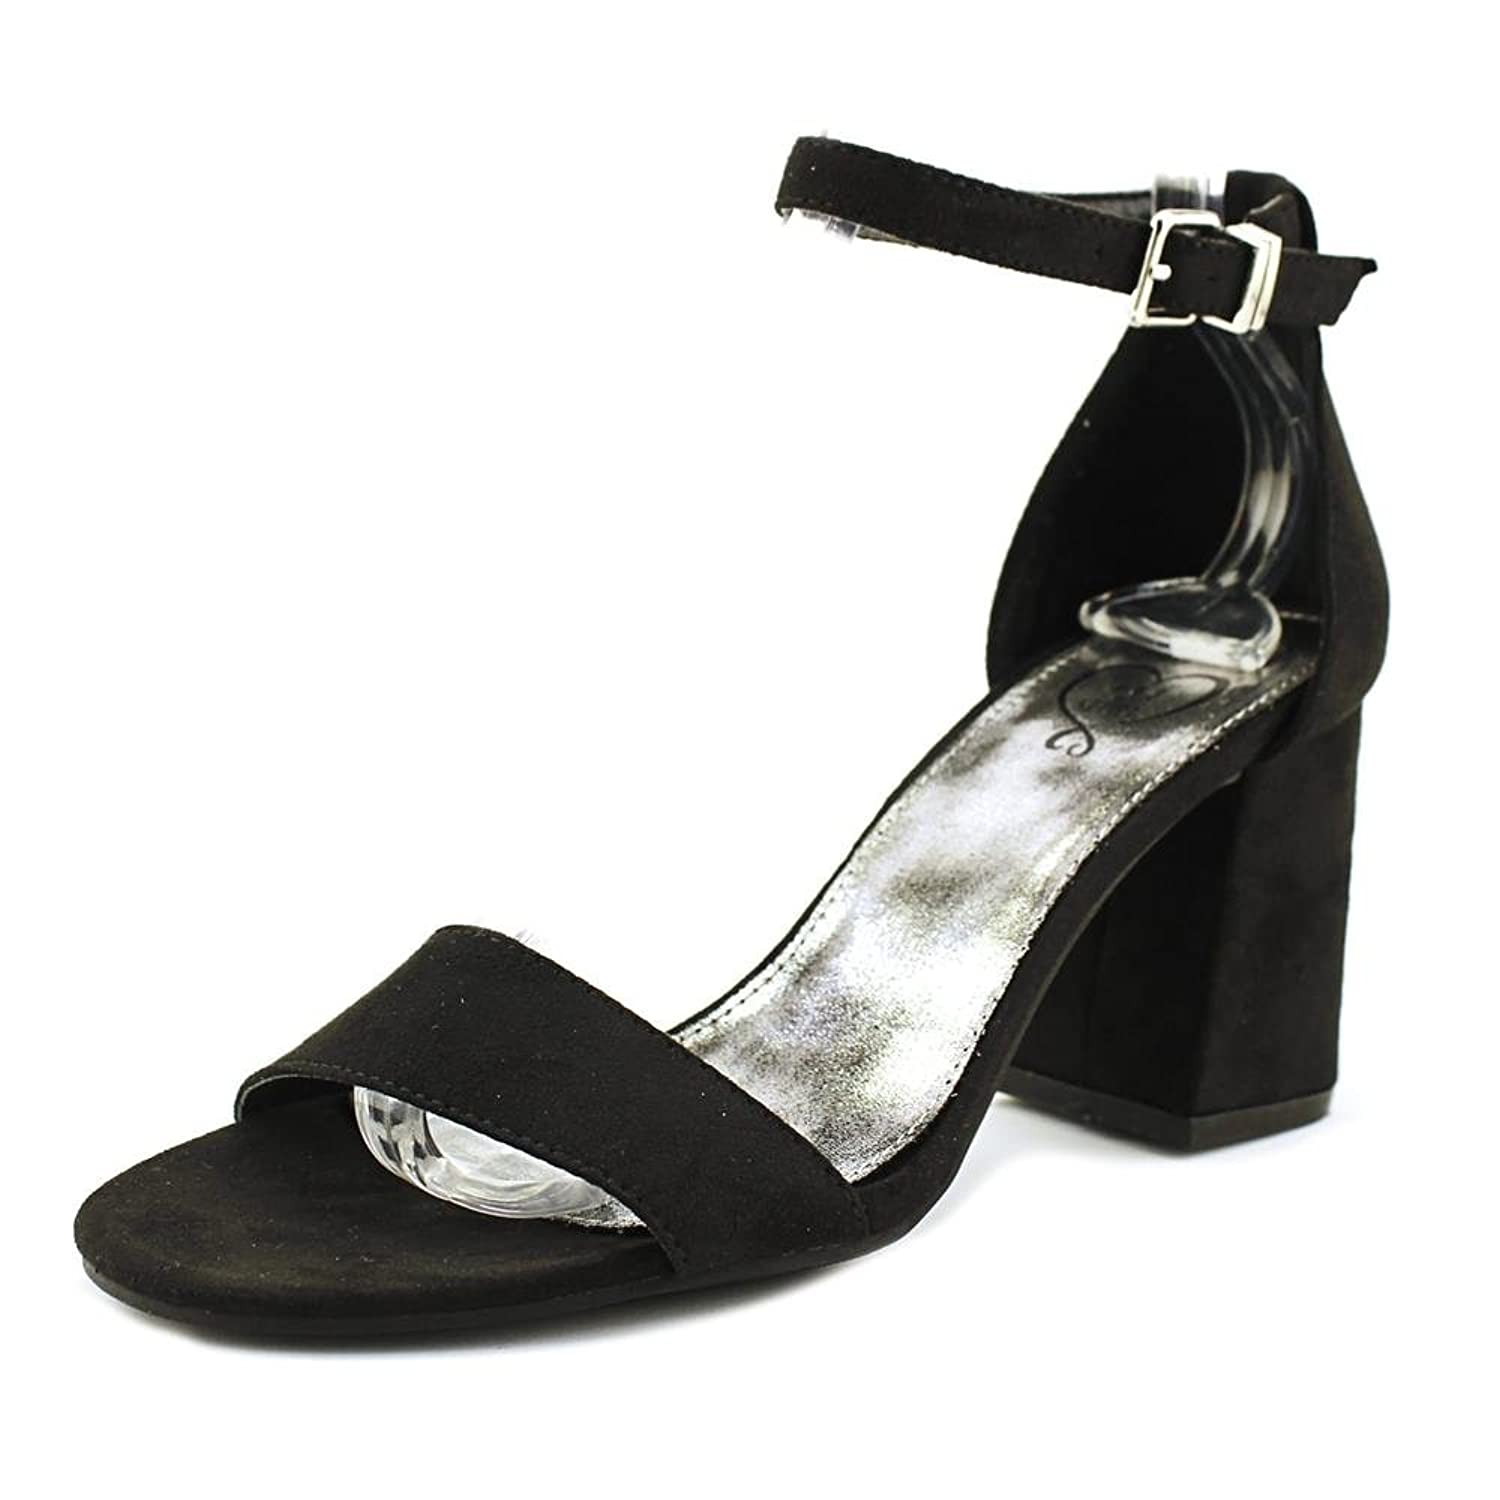 143 Girl Newsie Women US 8.5 Black Heels